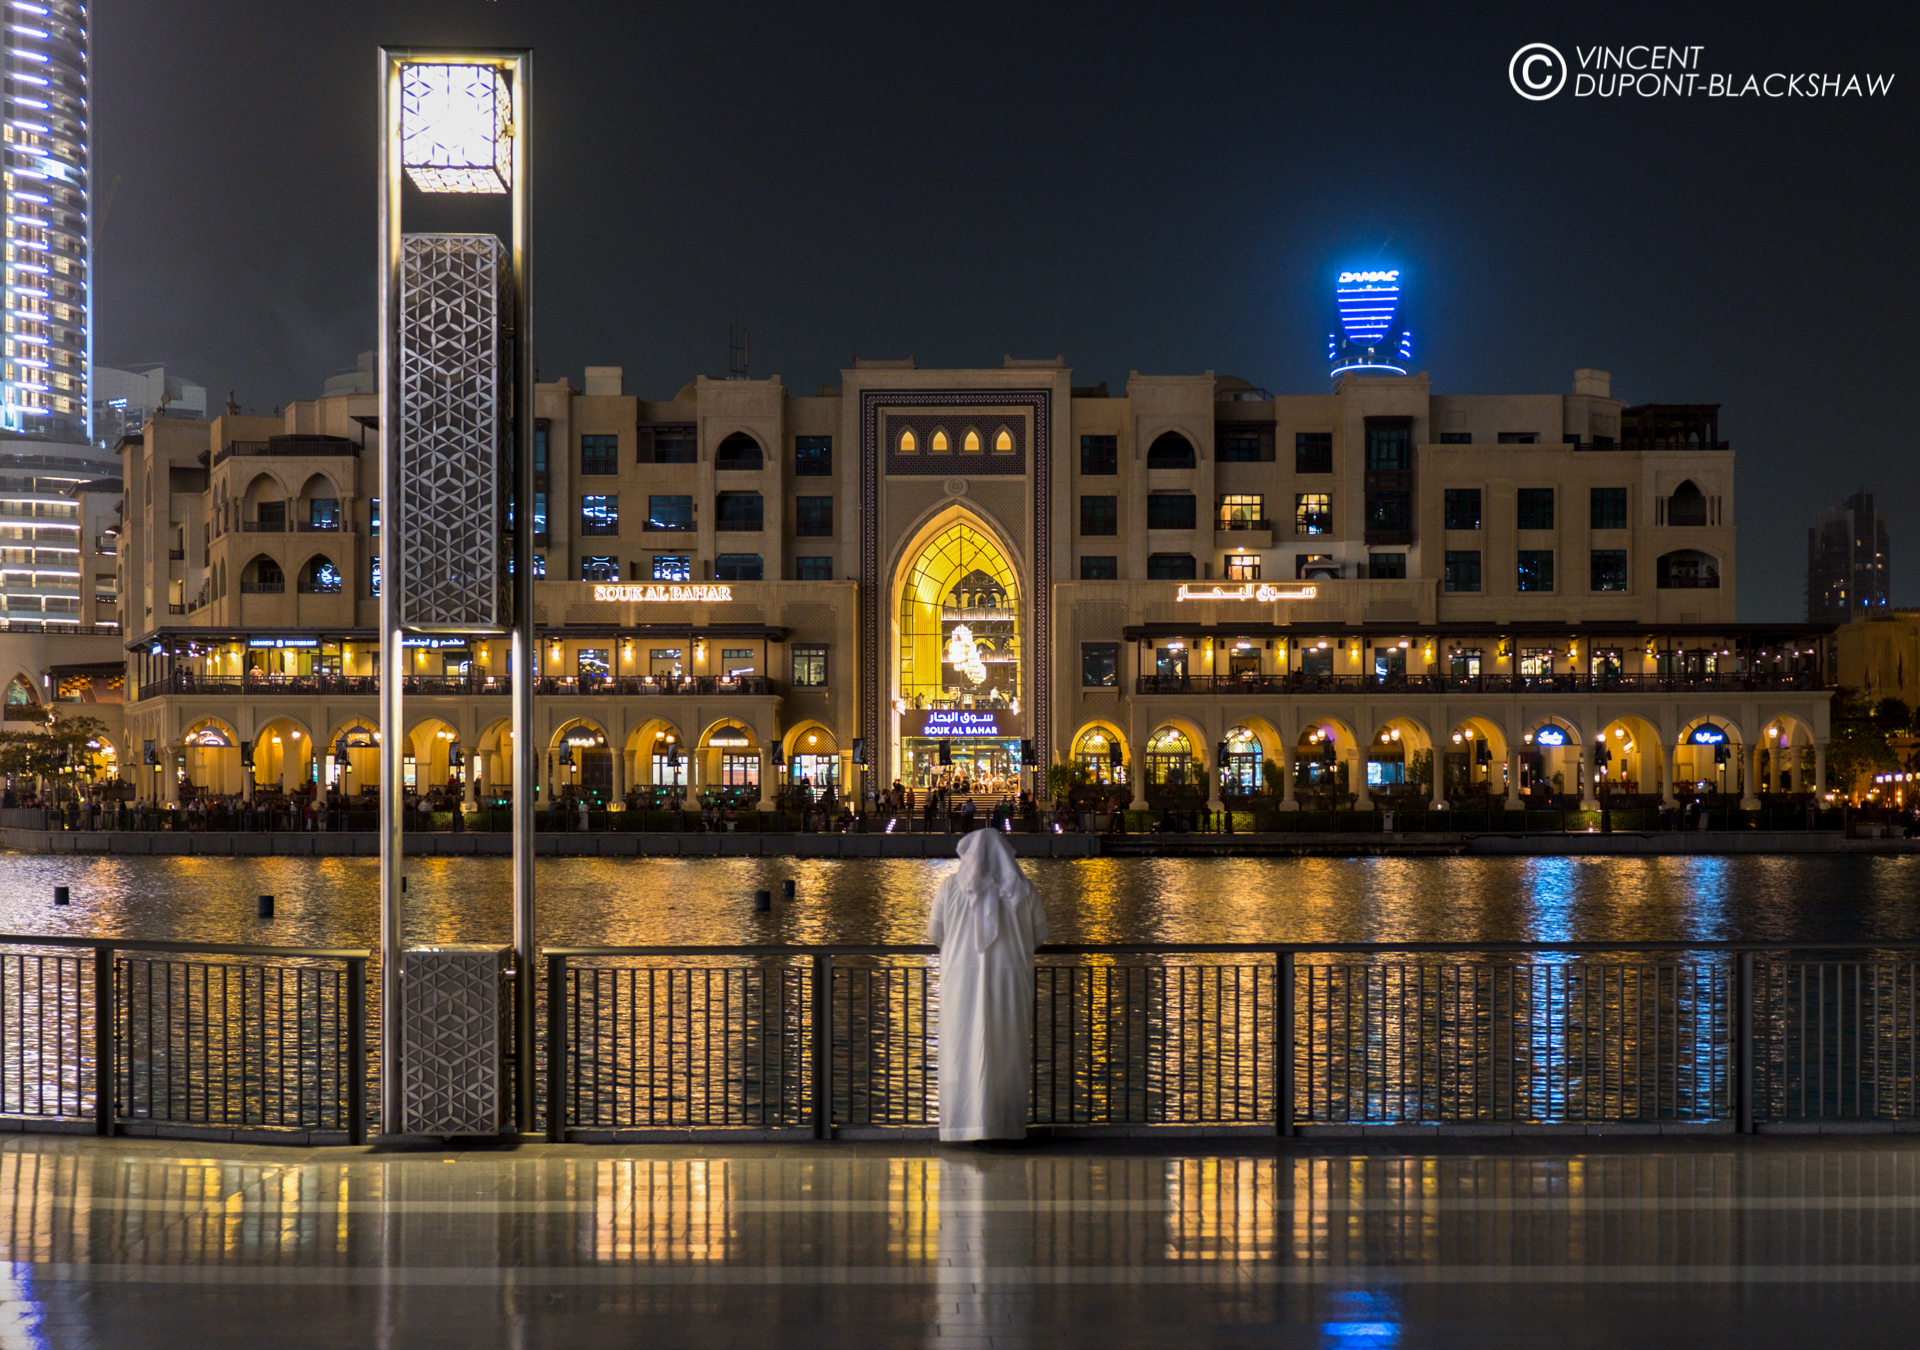 An emirati waits at the Dubai Fountain in the Dubai Mall